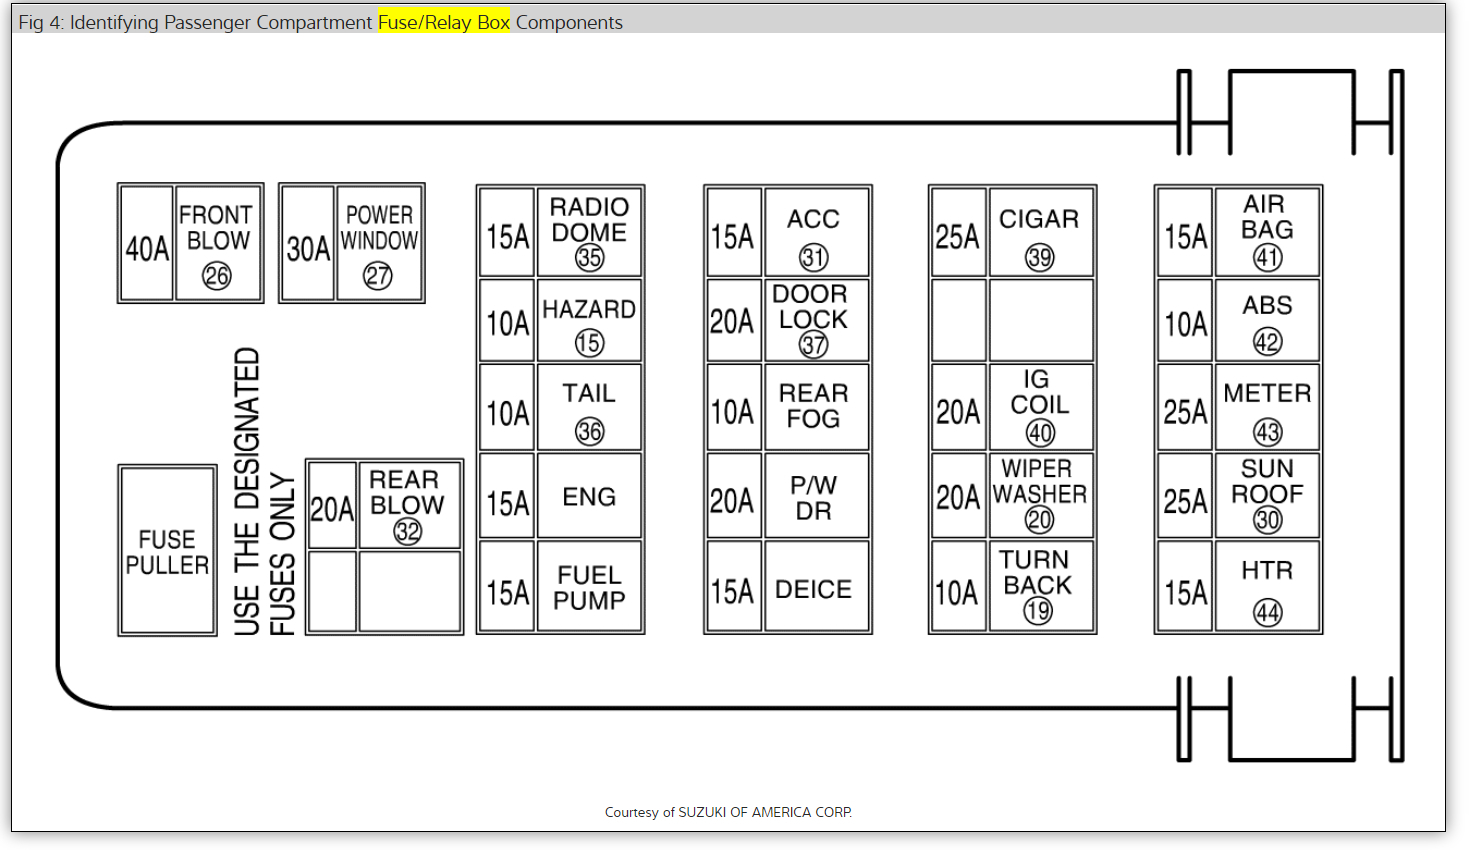 hight resolution of 2001 suzuki xl7 fuse box location wiring diagram mega fuse box on a 2001 suzuki xl7